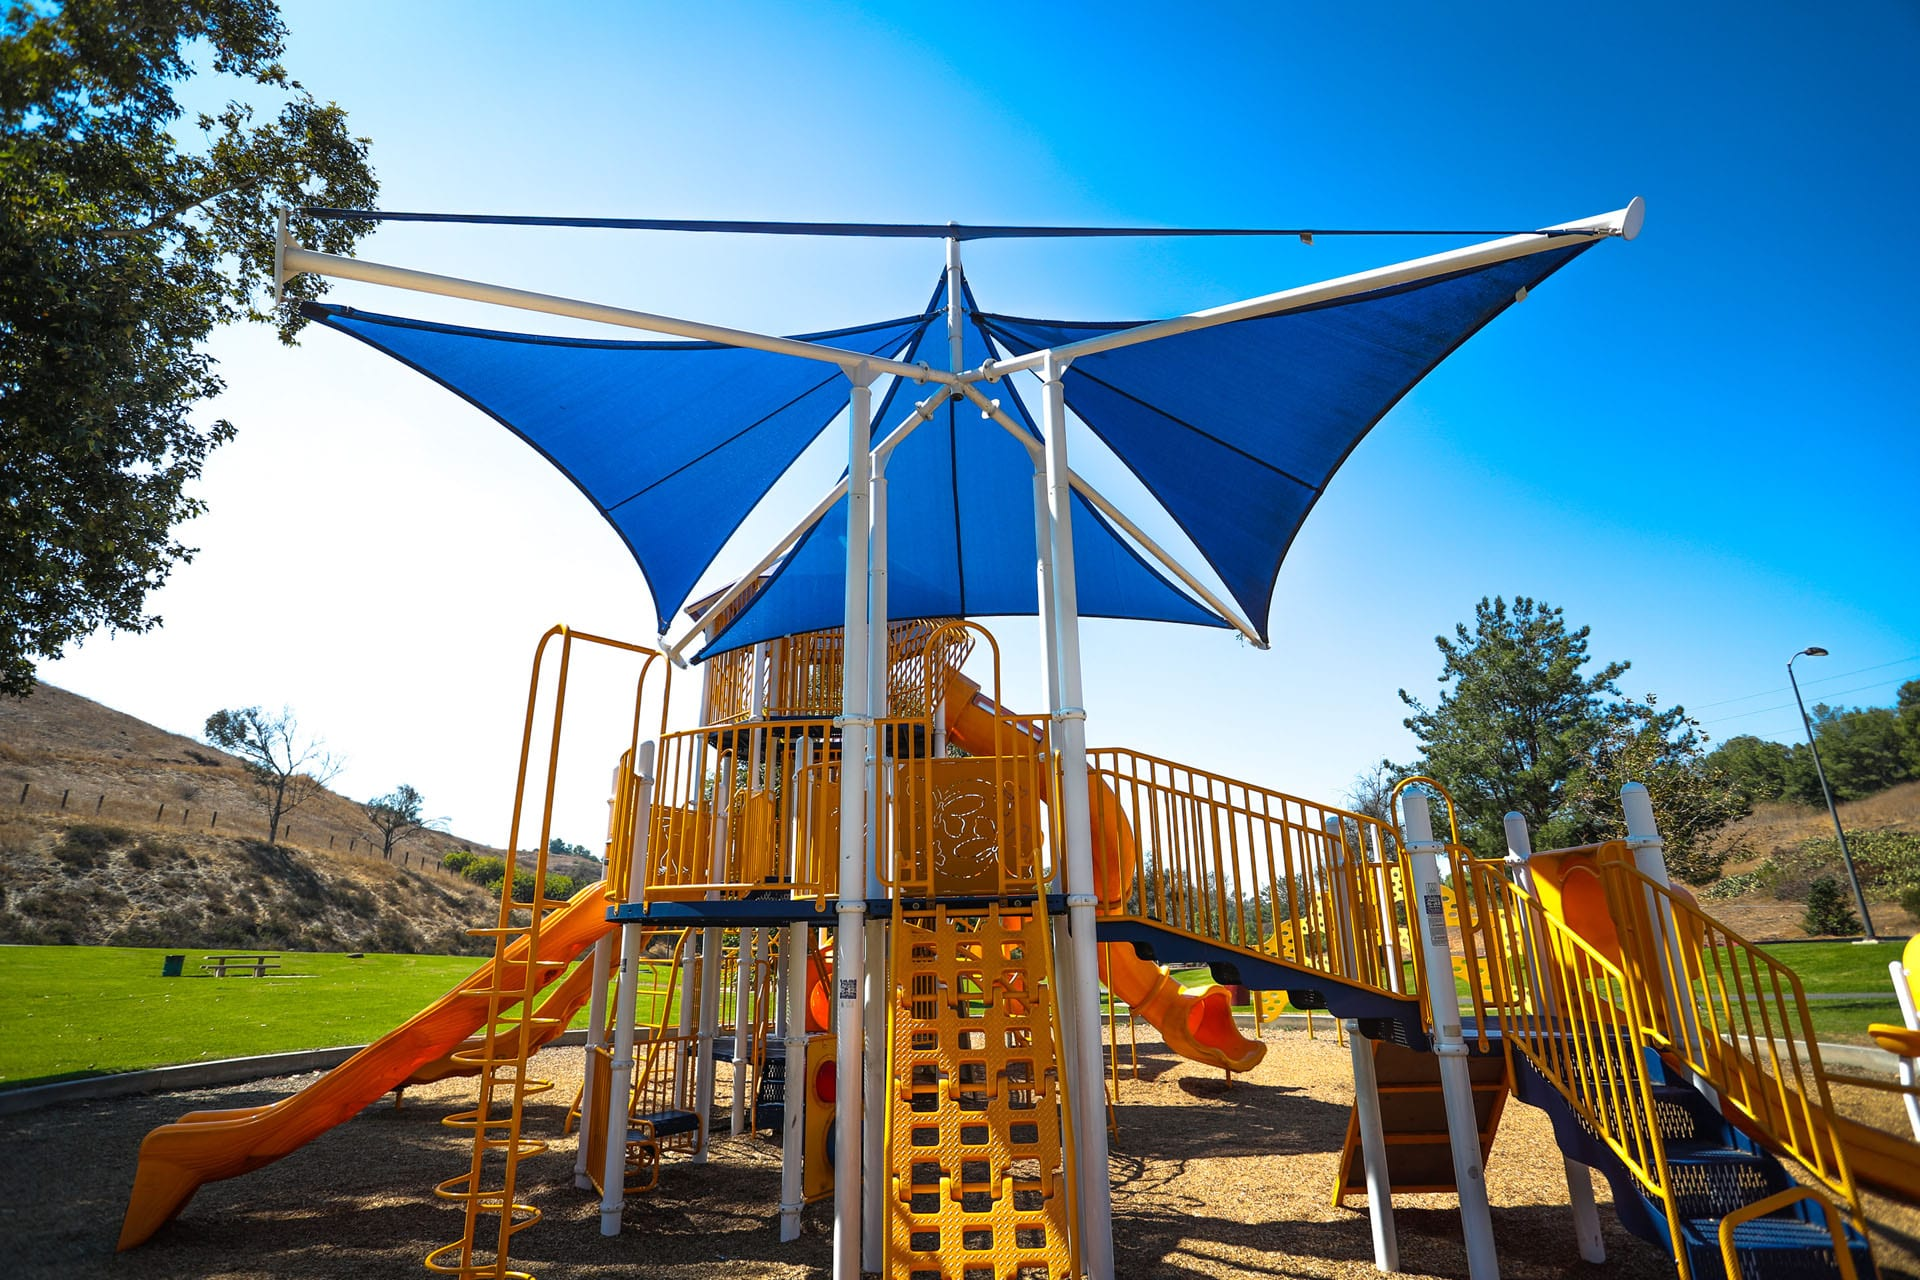 Canopy over a playground